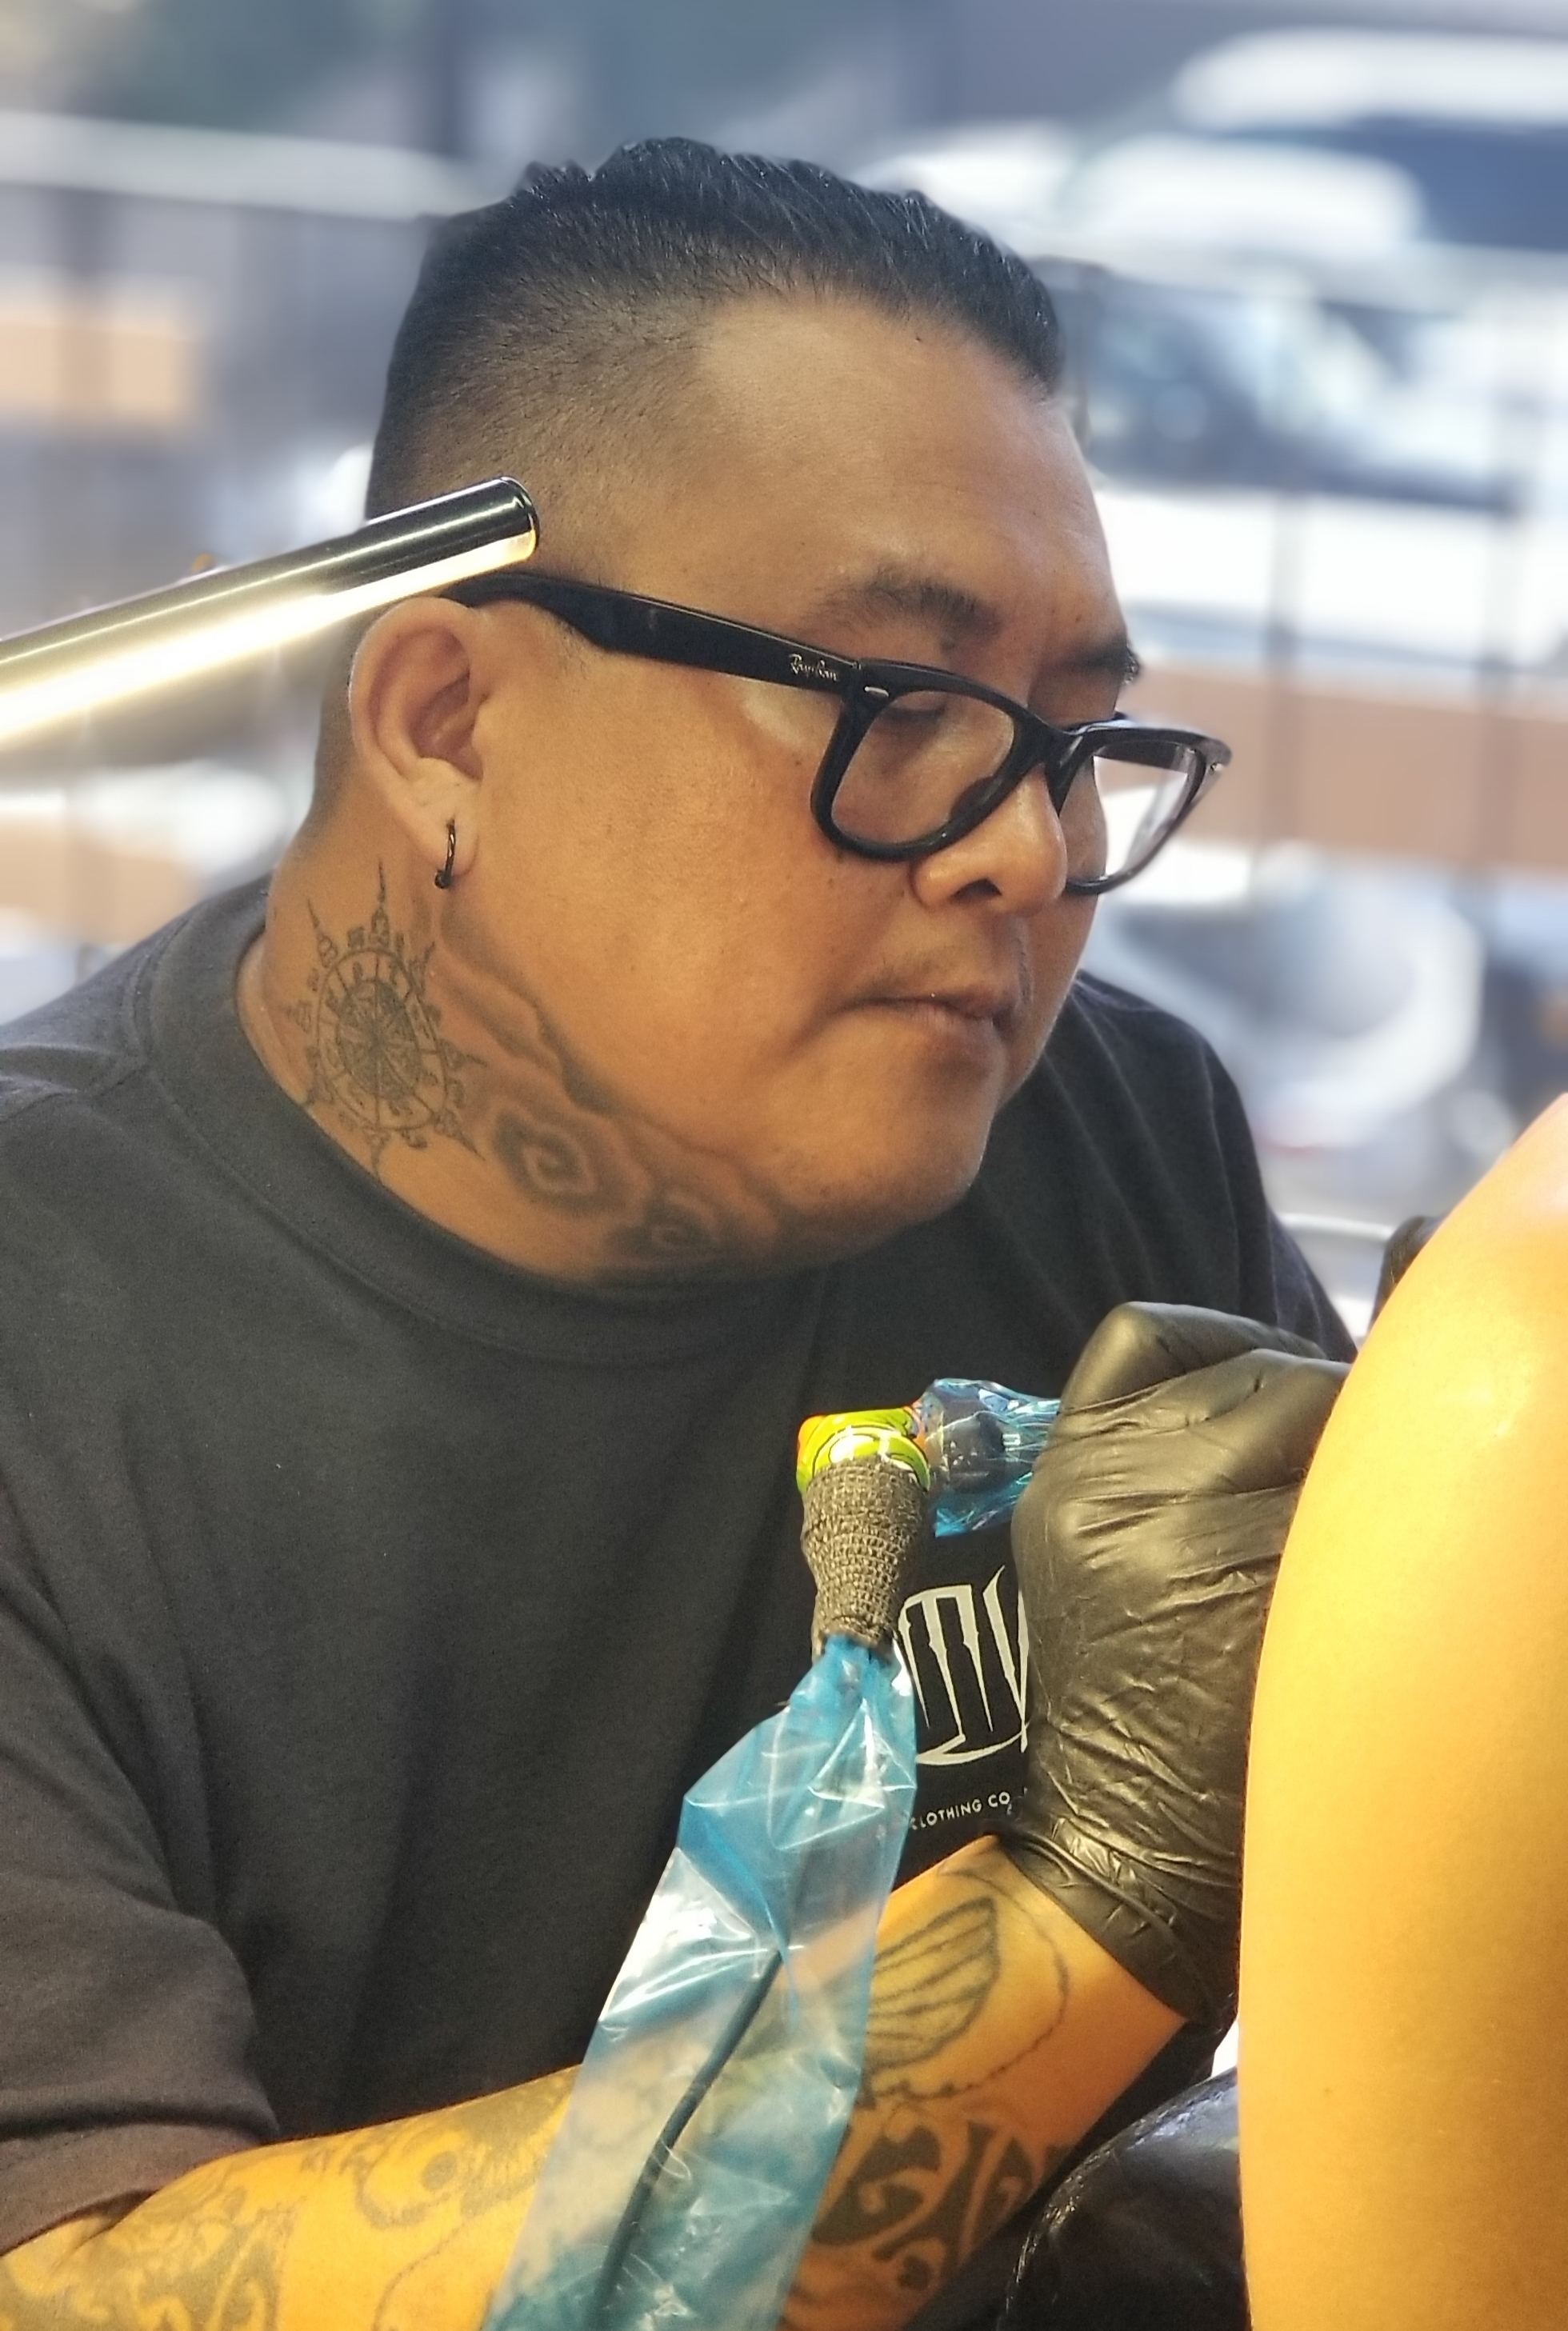 Vitt Louanglath - Vitt is based out of Anaheim, California. He is a self taught artist who loves to do all types of tattoo styles but his favorite is black and grey realism. Click his photo to check out his work!